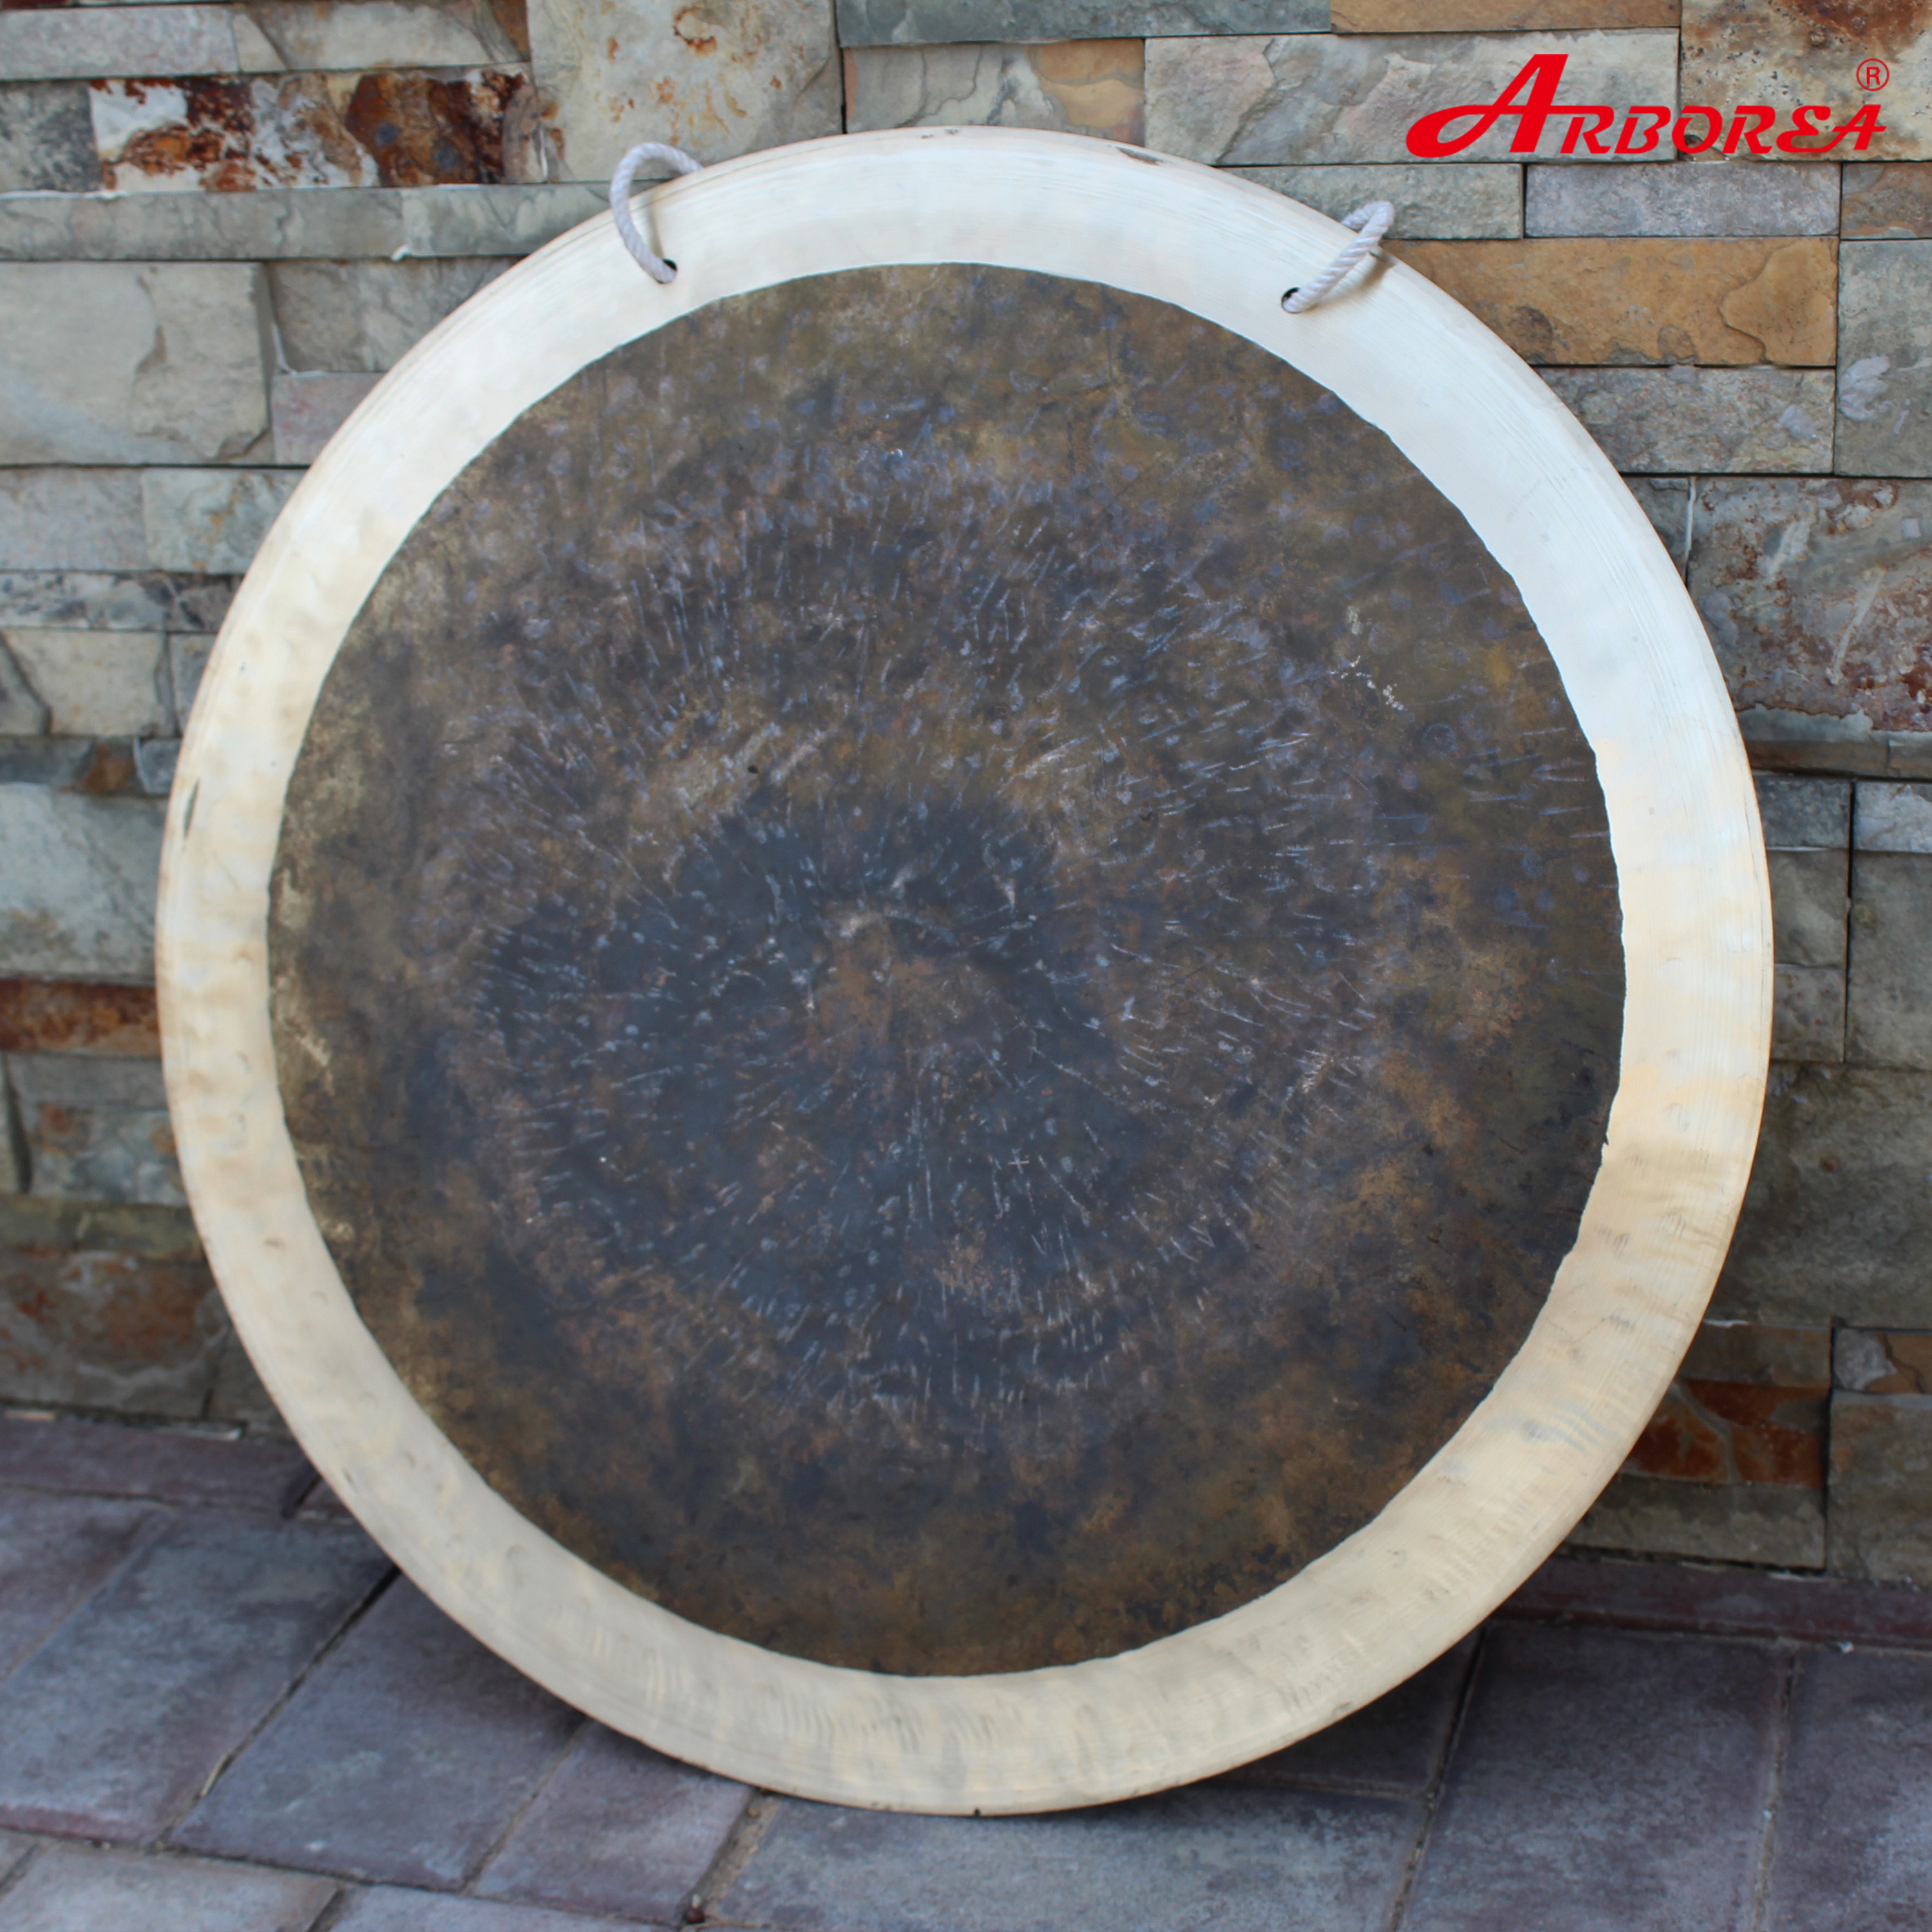 Arborea 100% Hand Hammered 12'' Eclipse Wind Gong